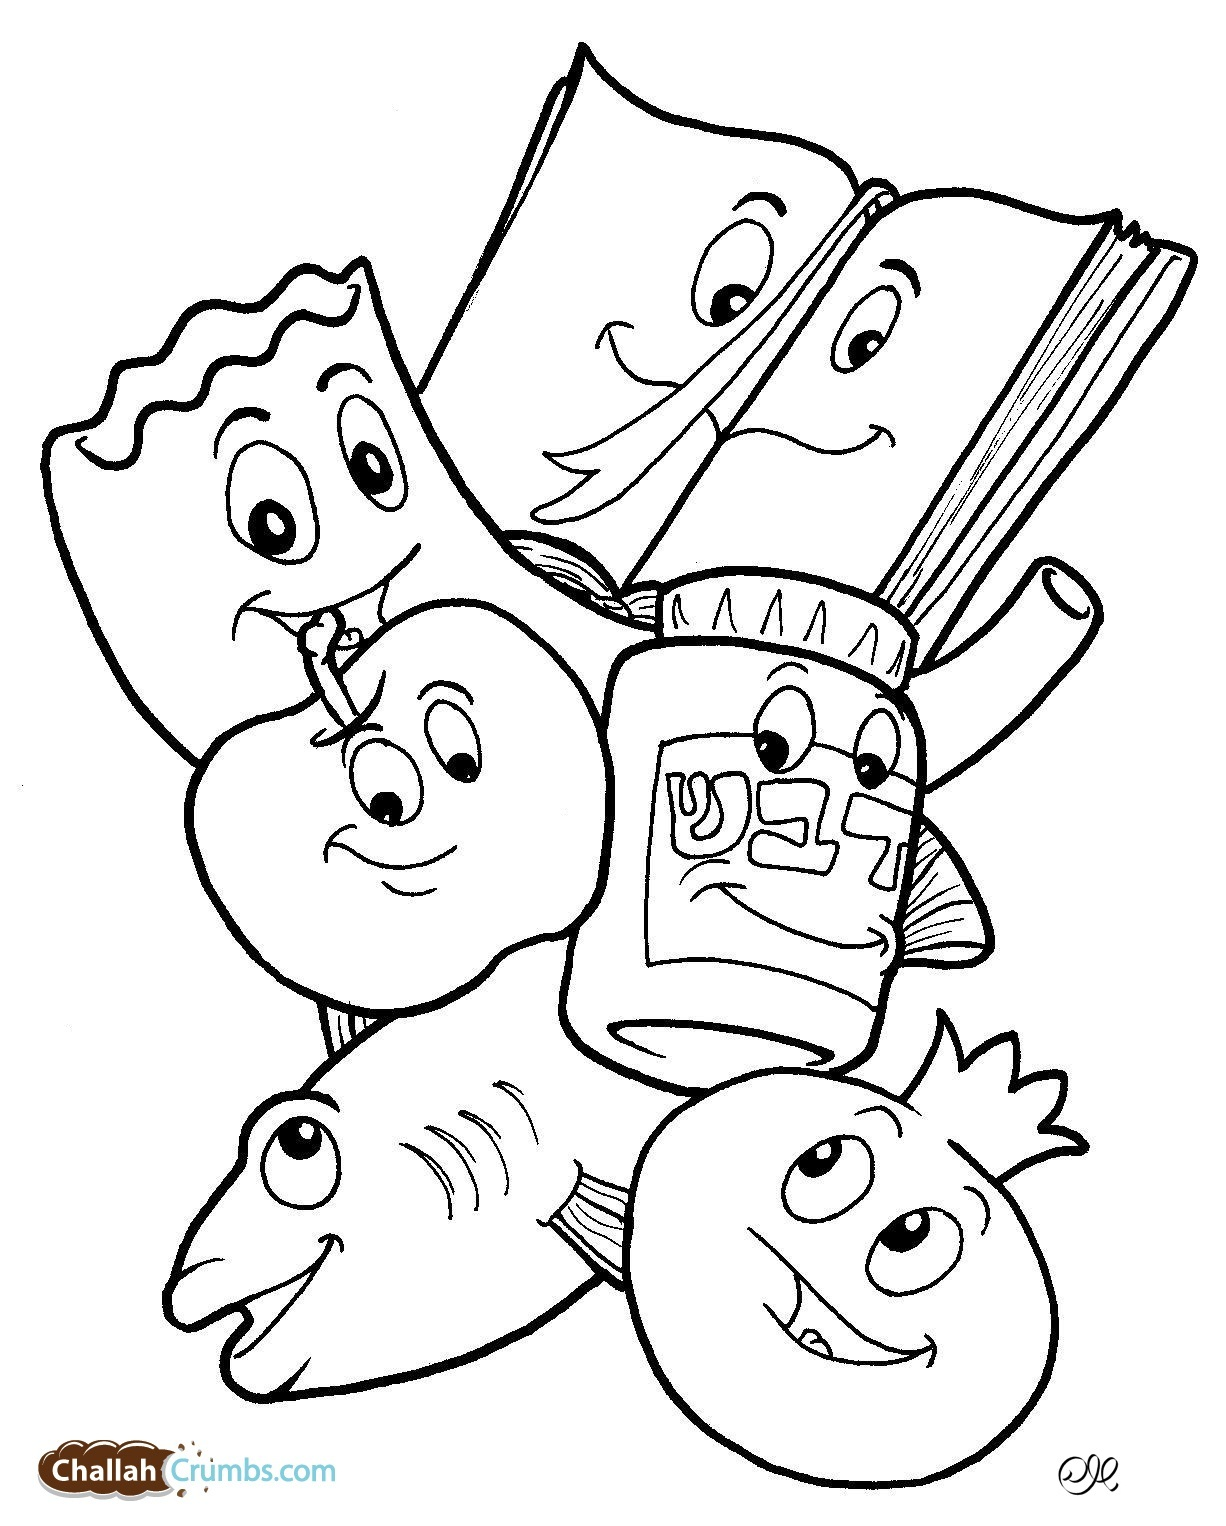 rosh hashanah coloring pages - photo#4